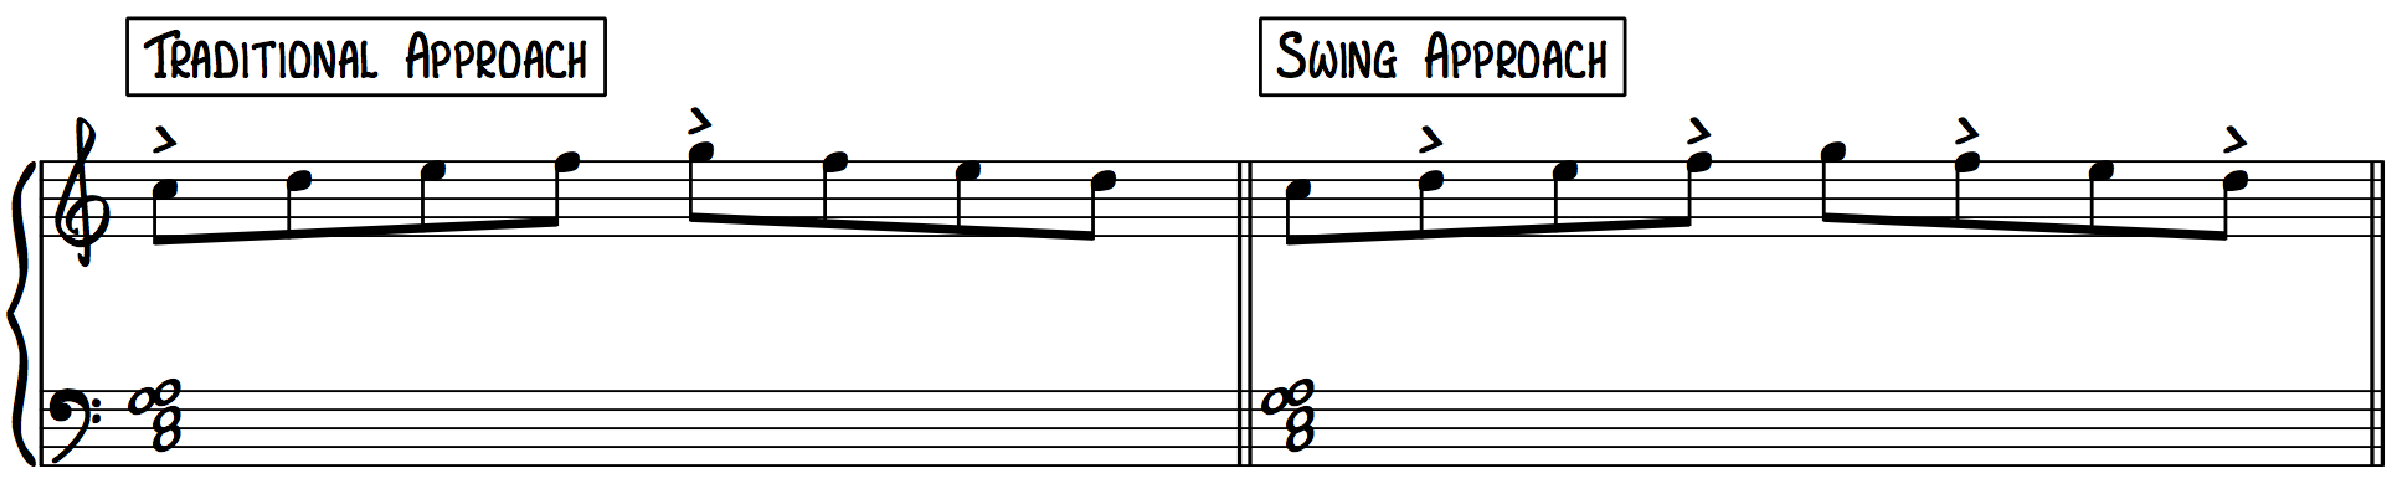 8th Notes Accented Upbeats Jazz Phrasing